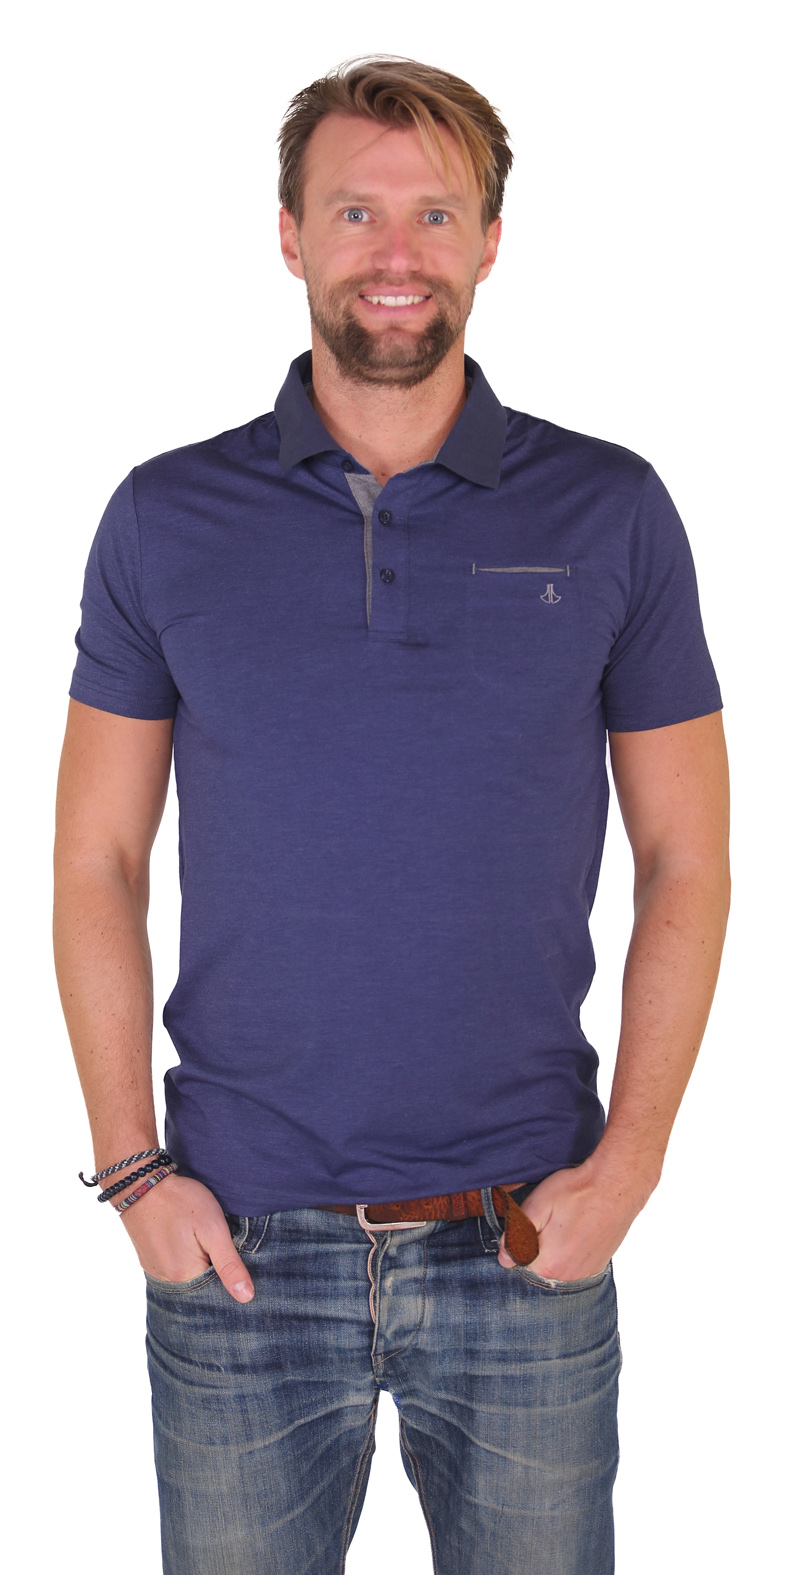 Polo Shirt Heren - Jusin